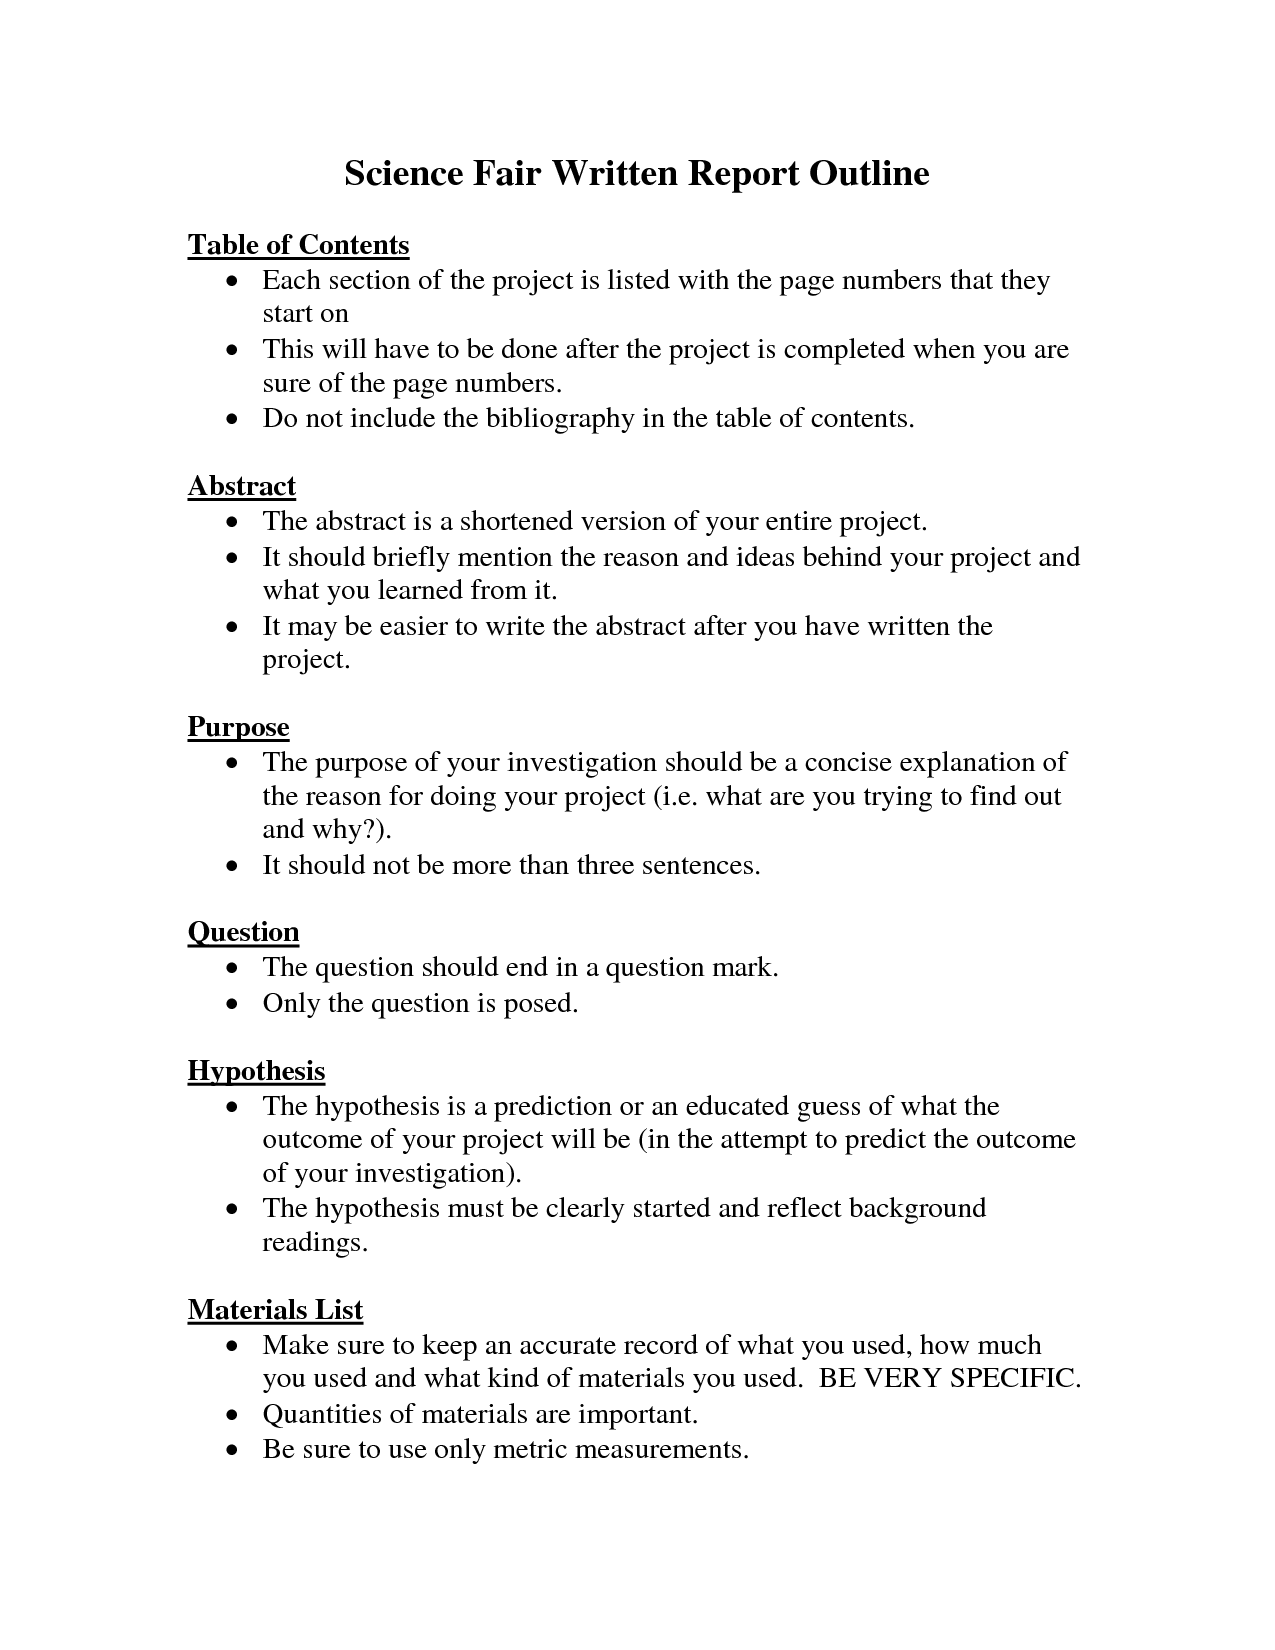 Science term paper format